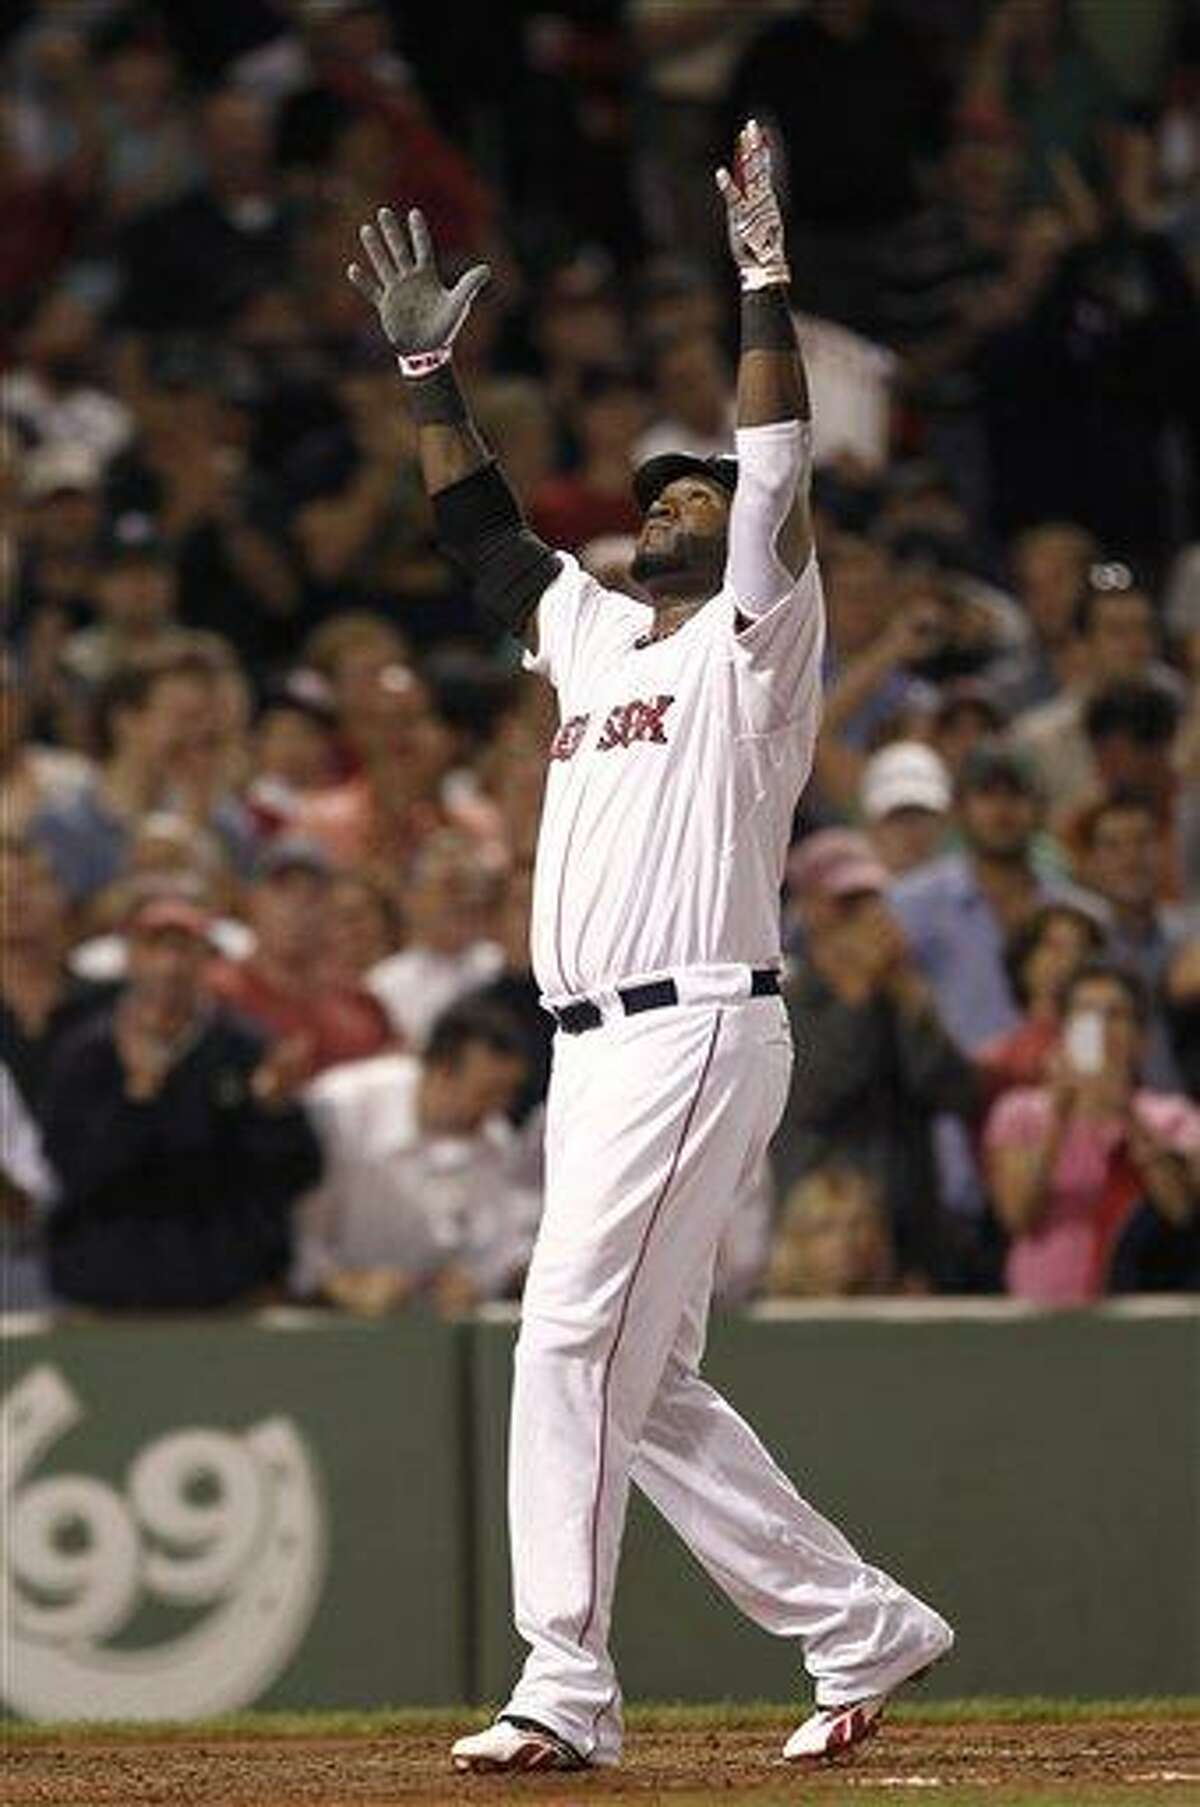 Boston Red Sox designated hitter David Ortiz raises his arms after scoring on his two-run home run against the New York Yankees during the fifth inning Wednesday. The Red Sox beat the Yankees 9-5. (AP Photo)